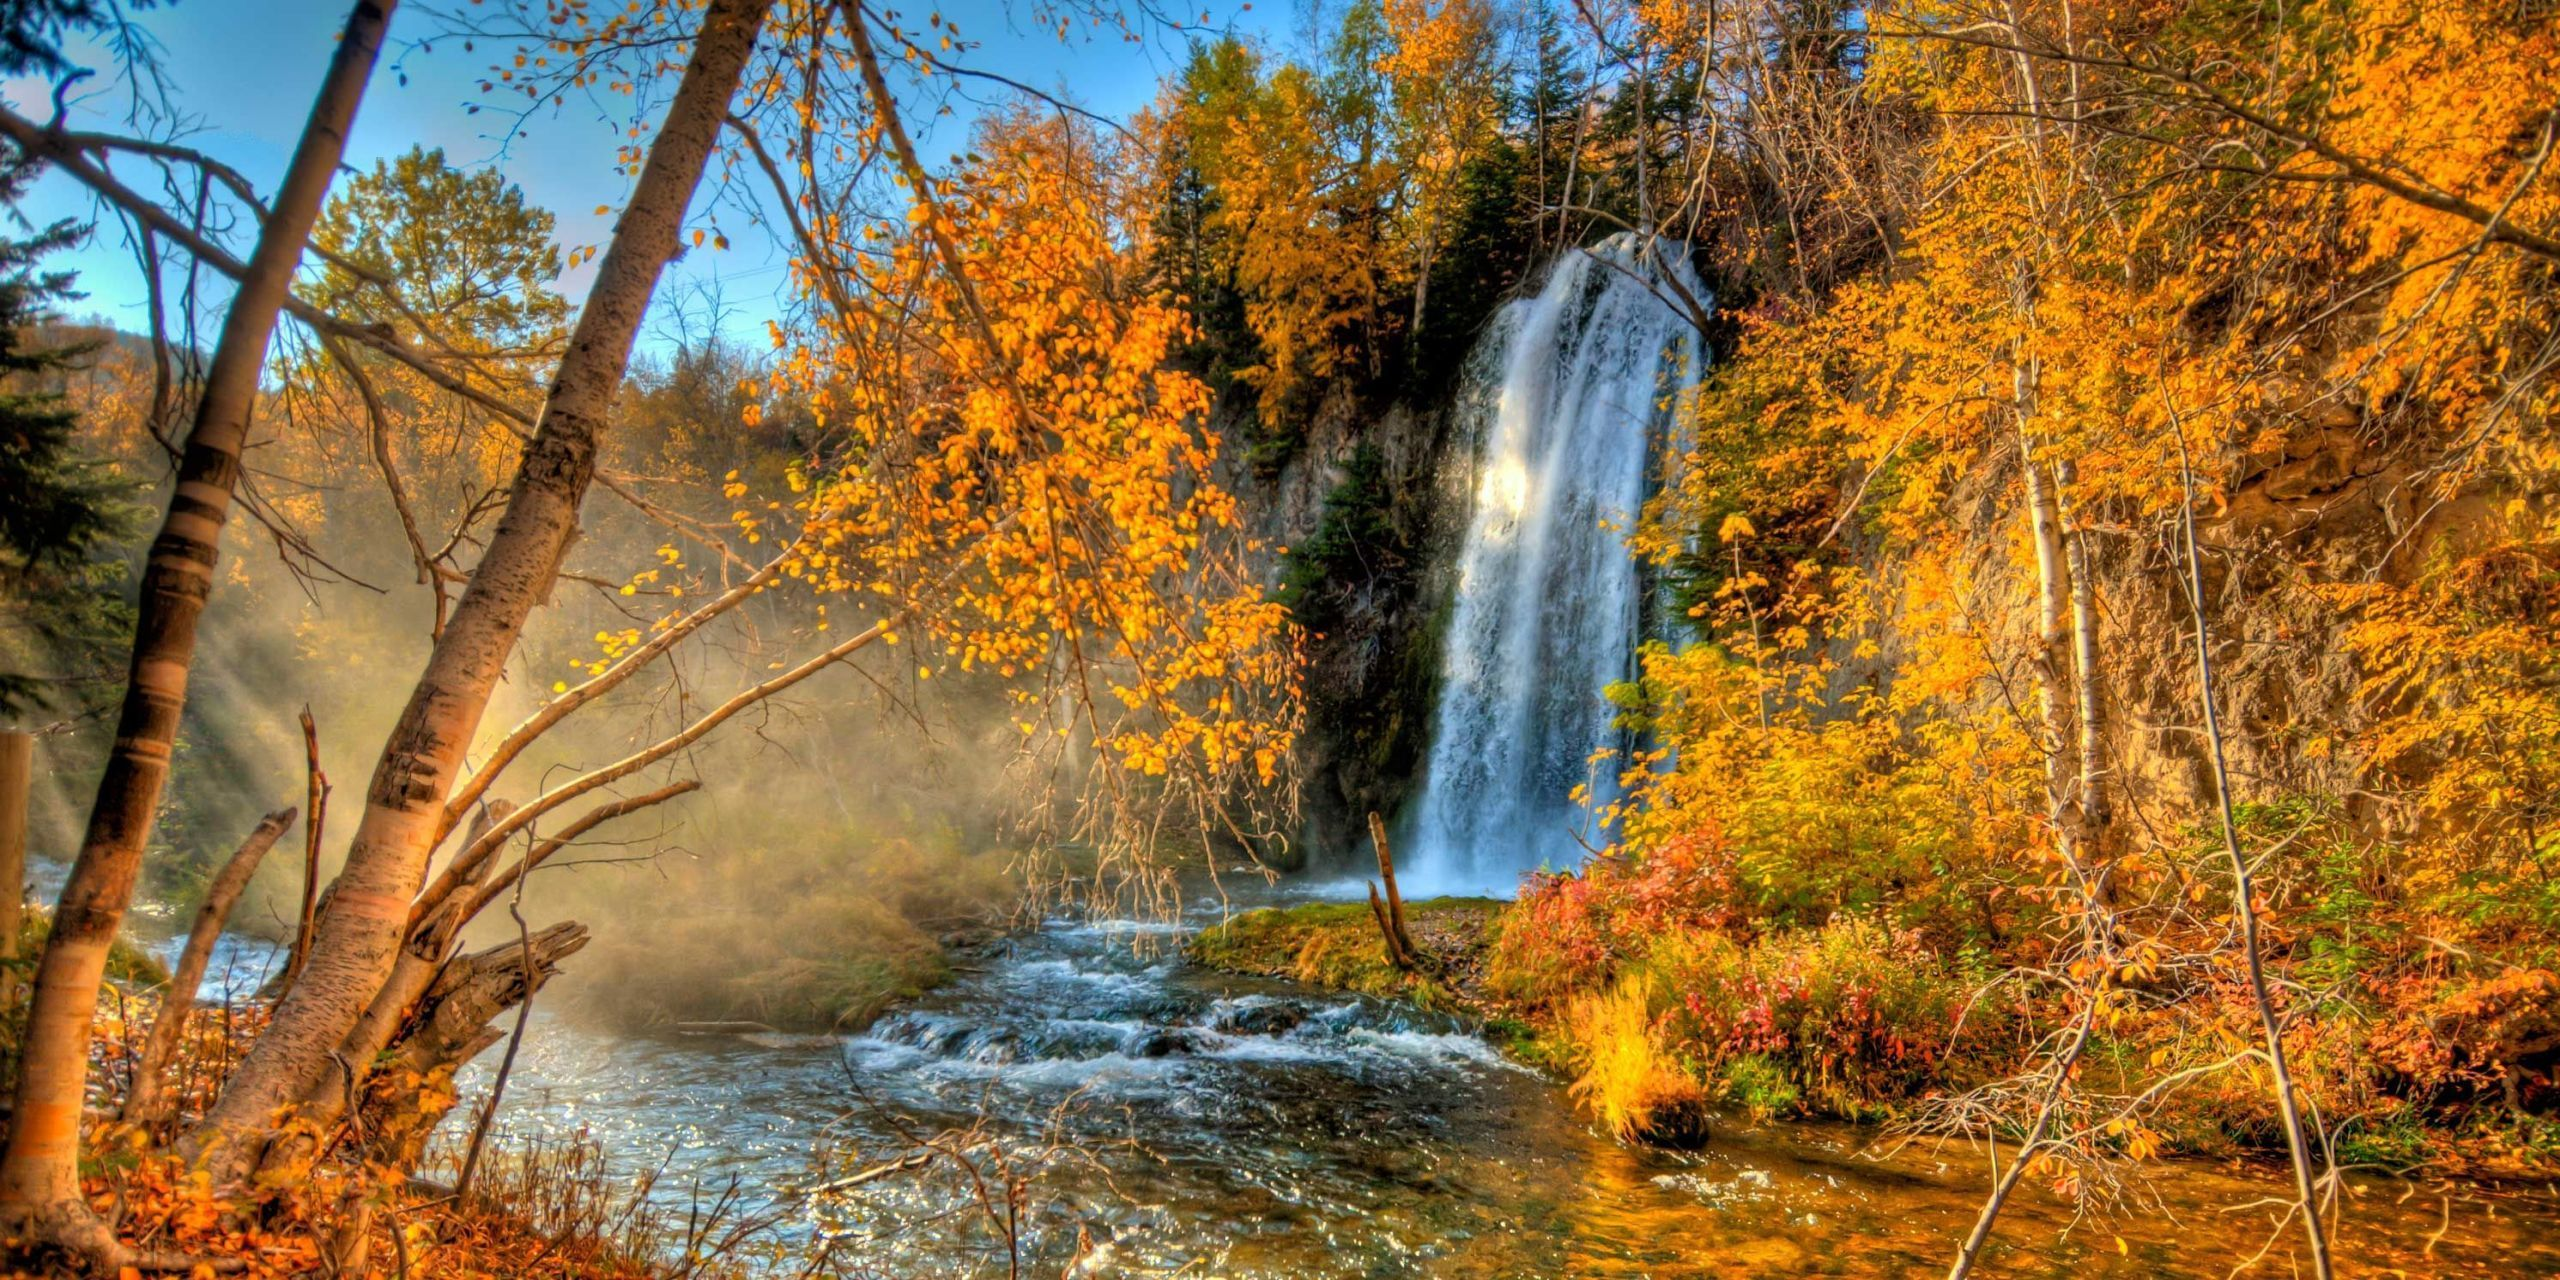 7 Lesser-Known Fall Foliage Destinations You've Never Visited But Should